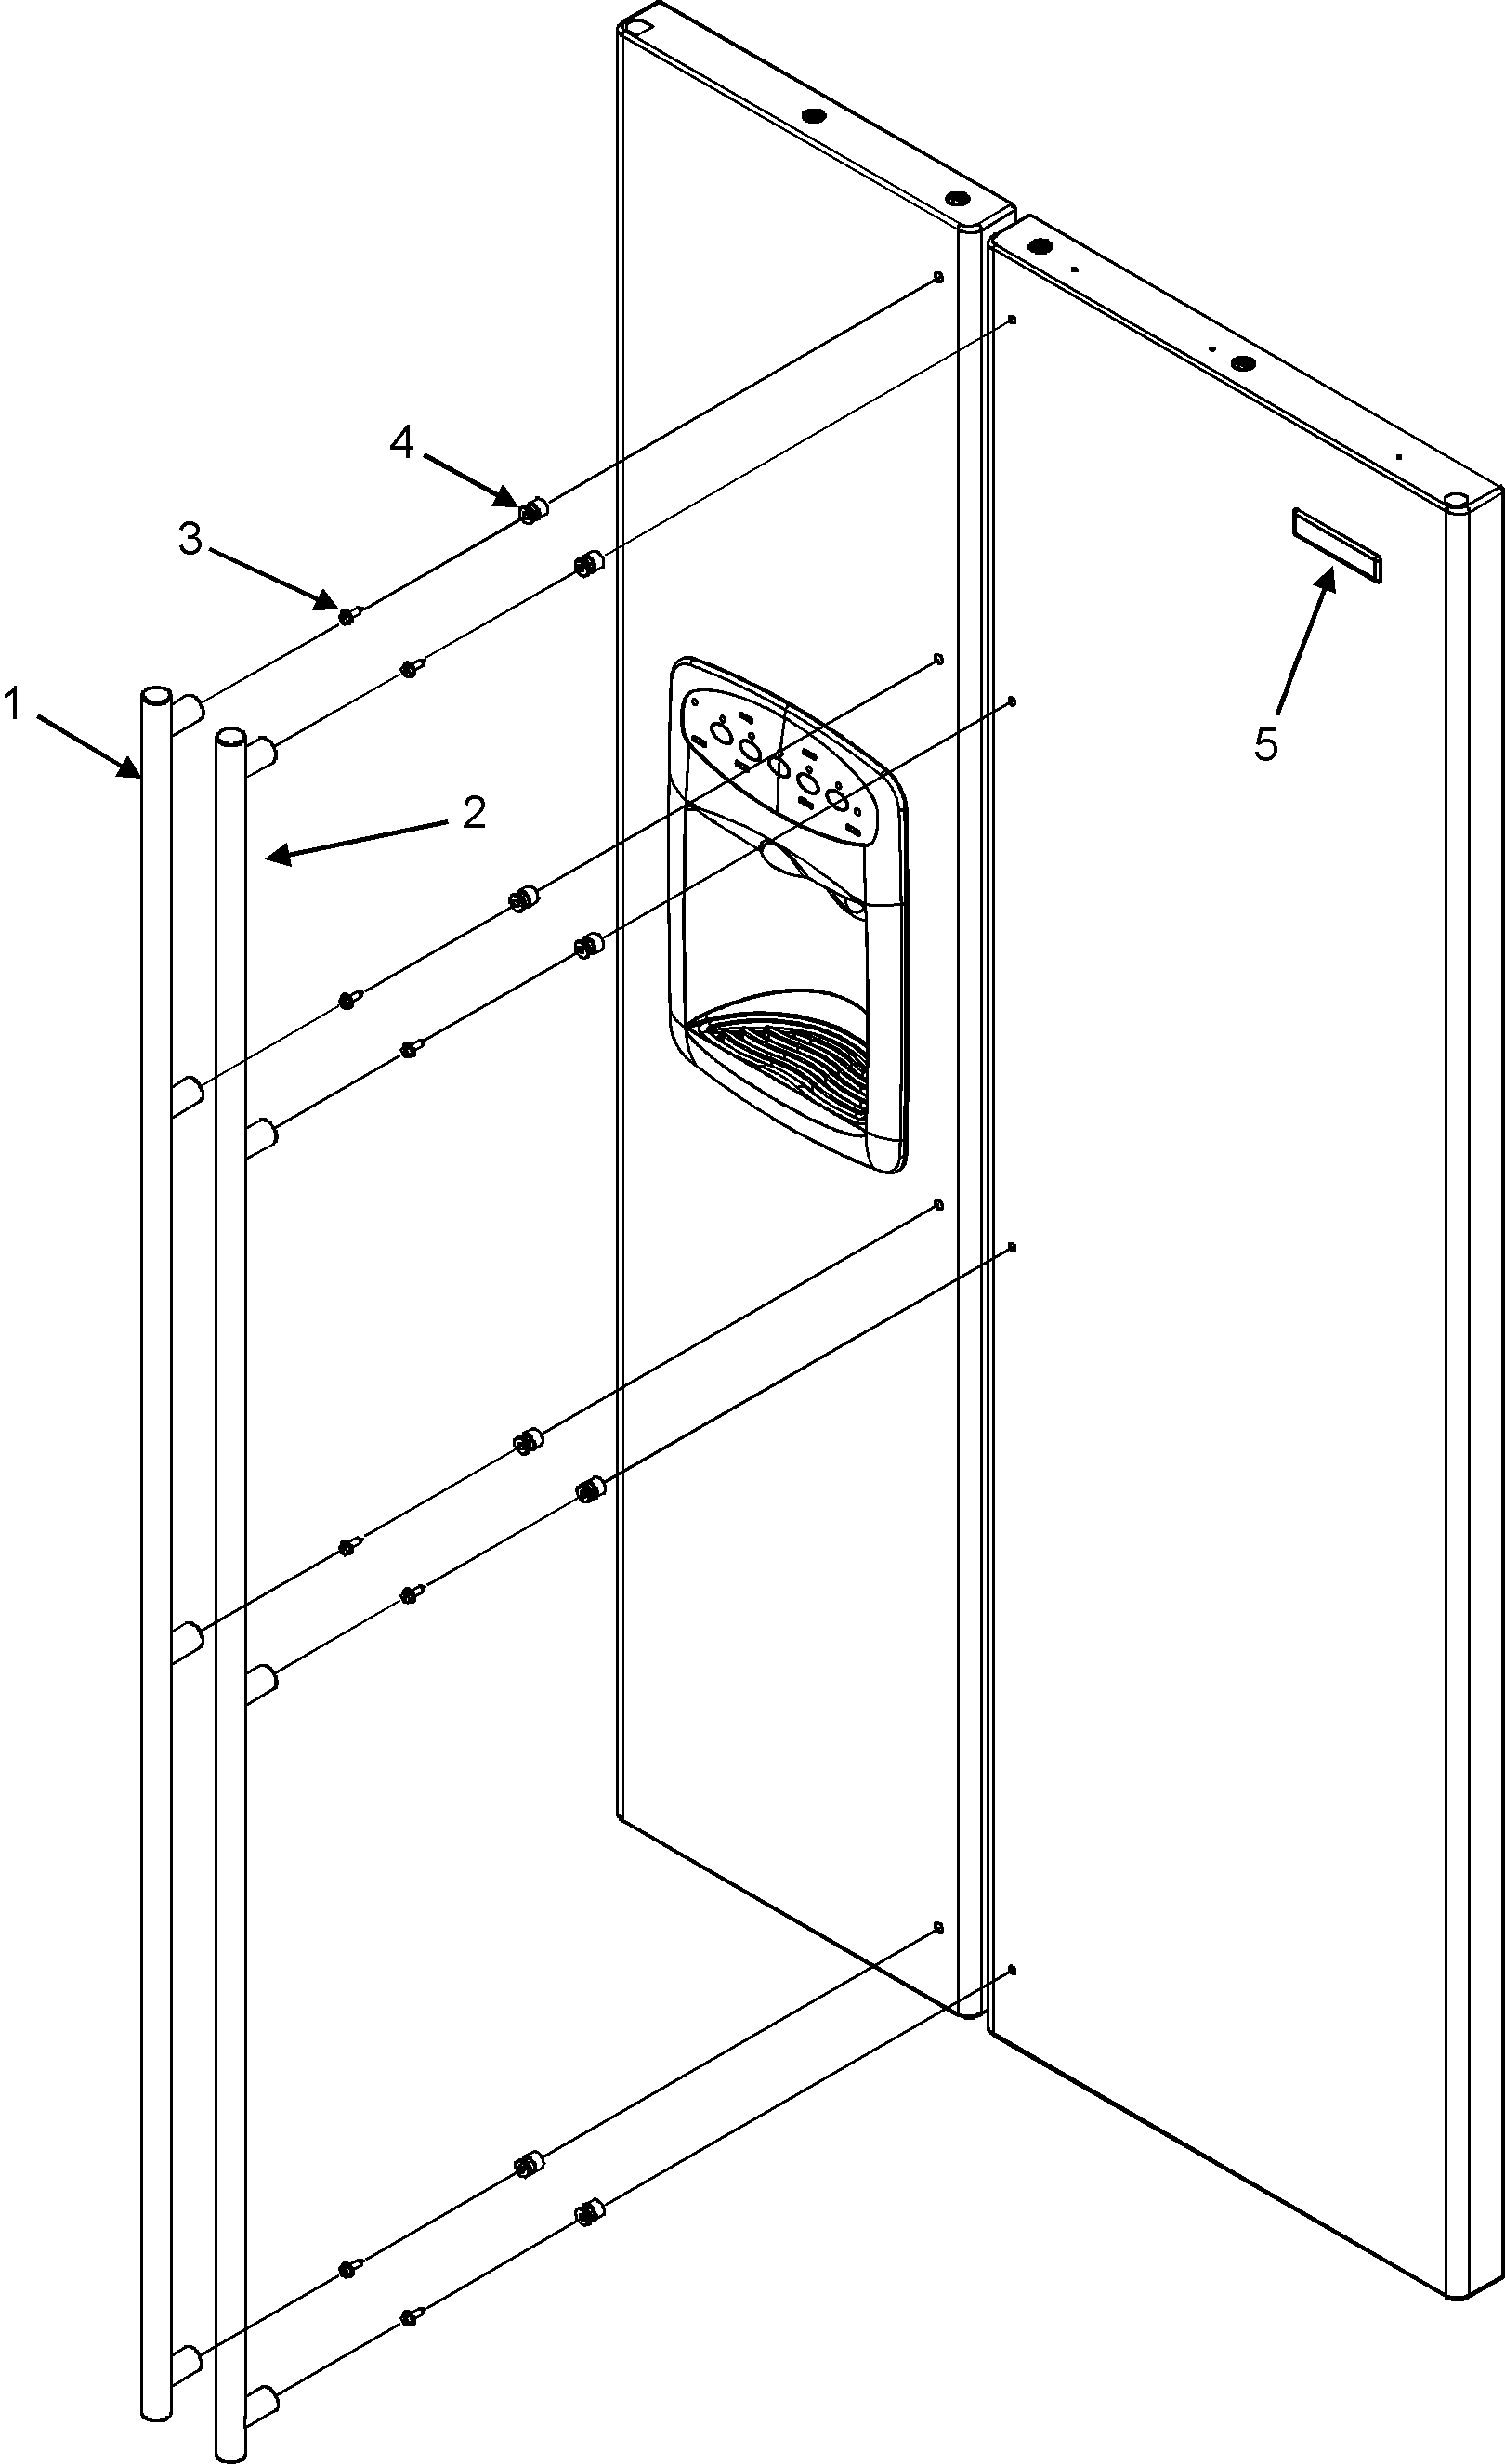 Jenn-Air model JCD2295KES side-by-side refrigerator